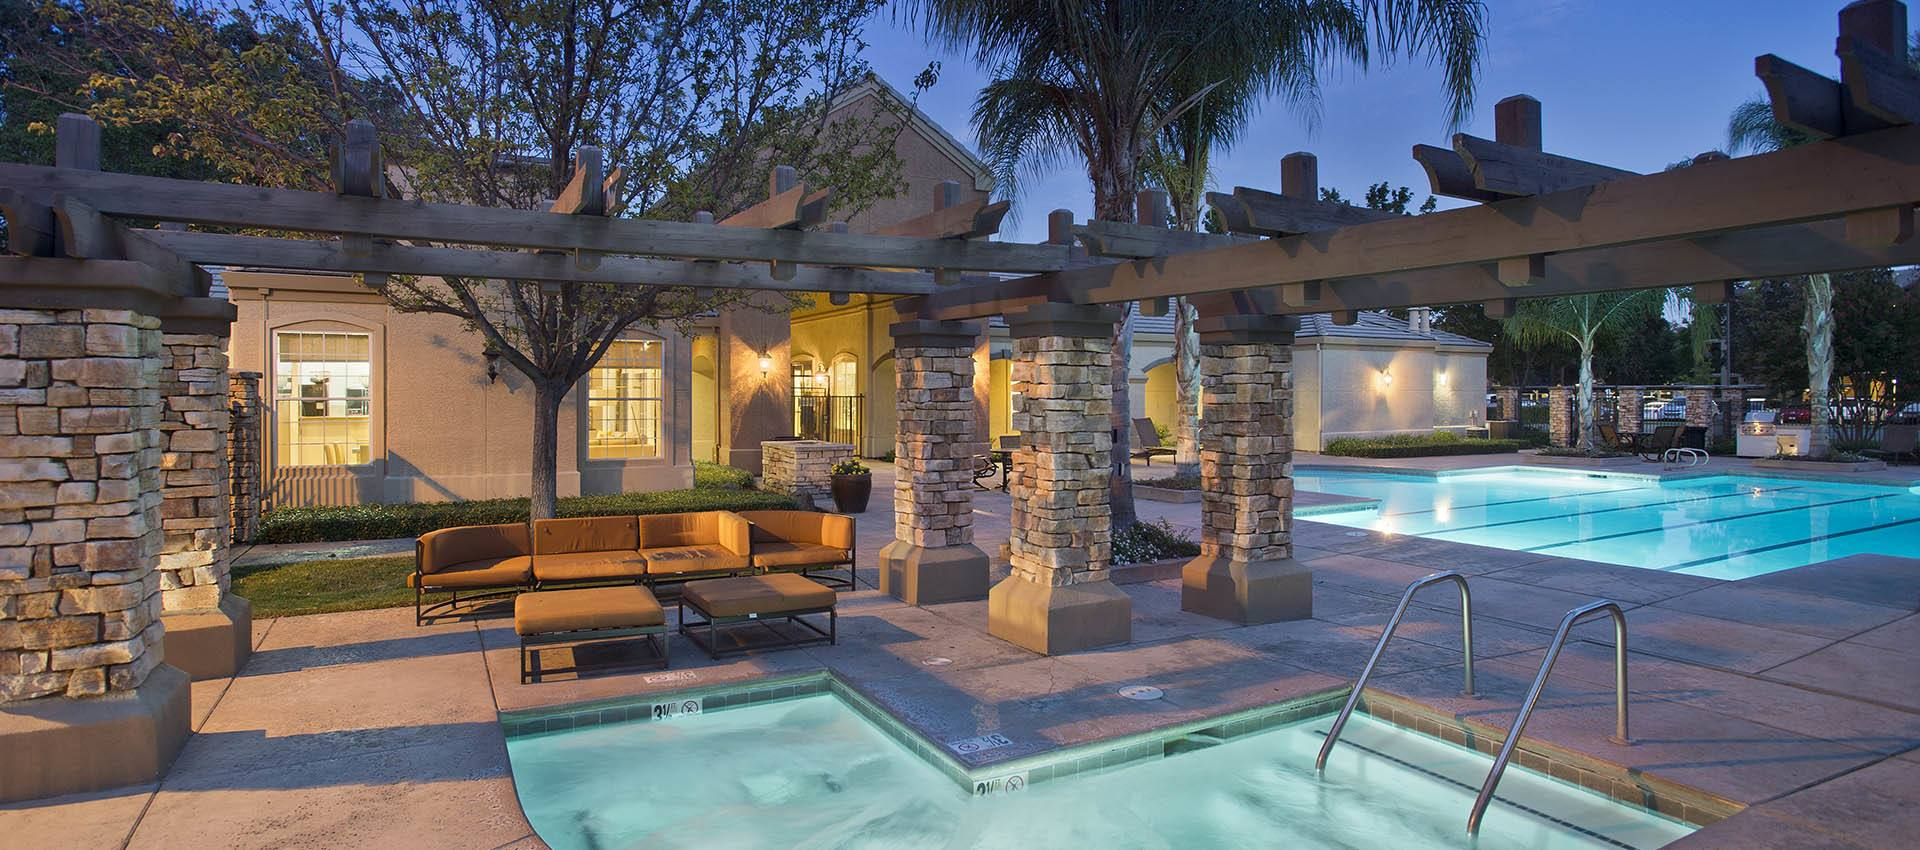 Expansive Pool Deck with Spa at River Oaks Apartment Homes in Vacaville